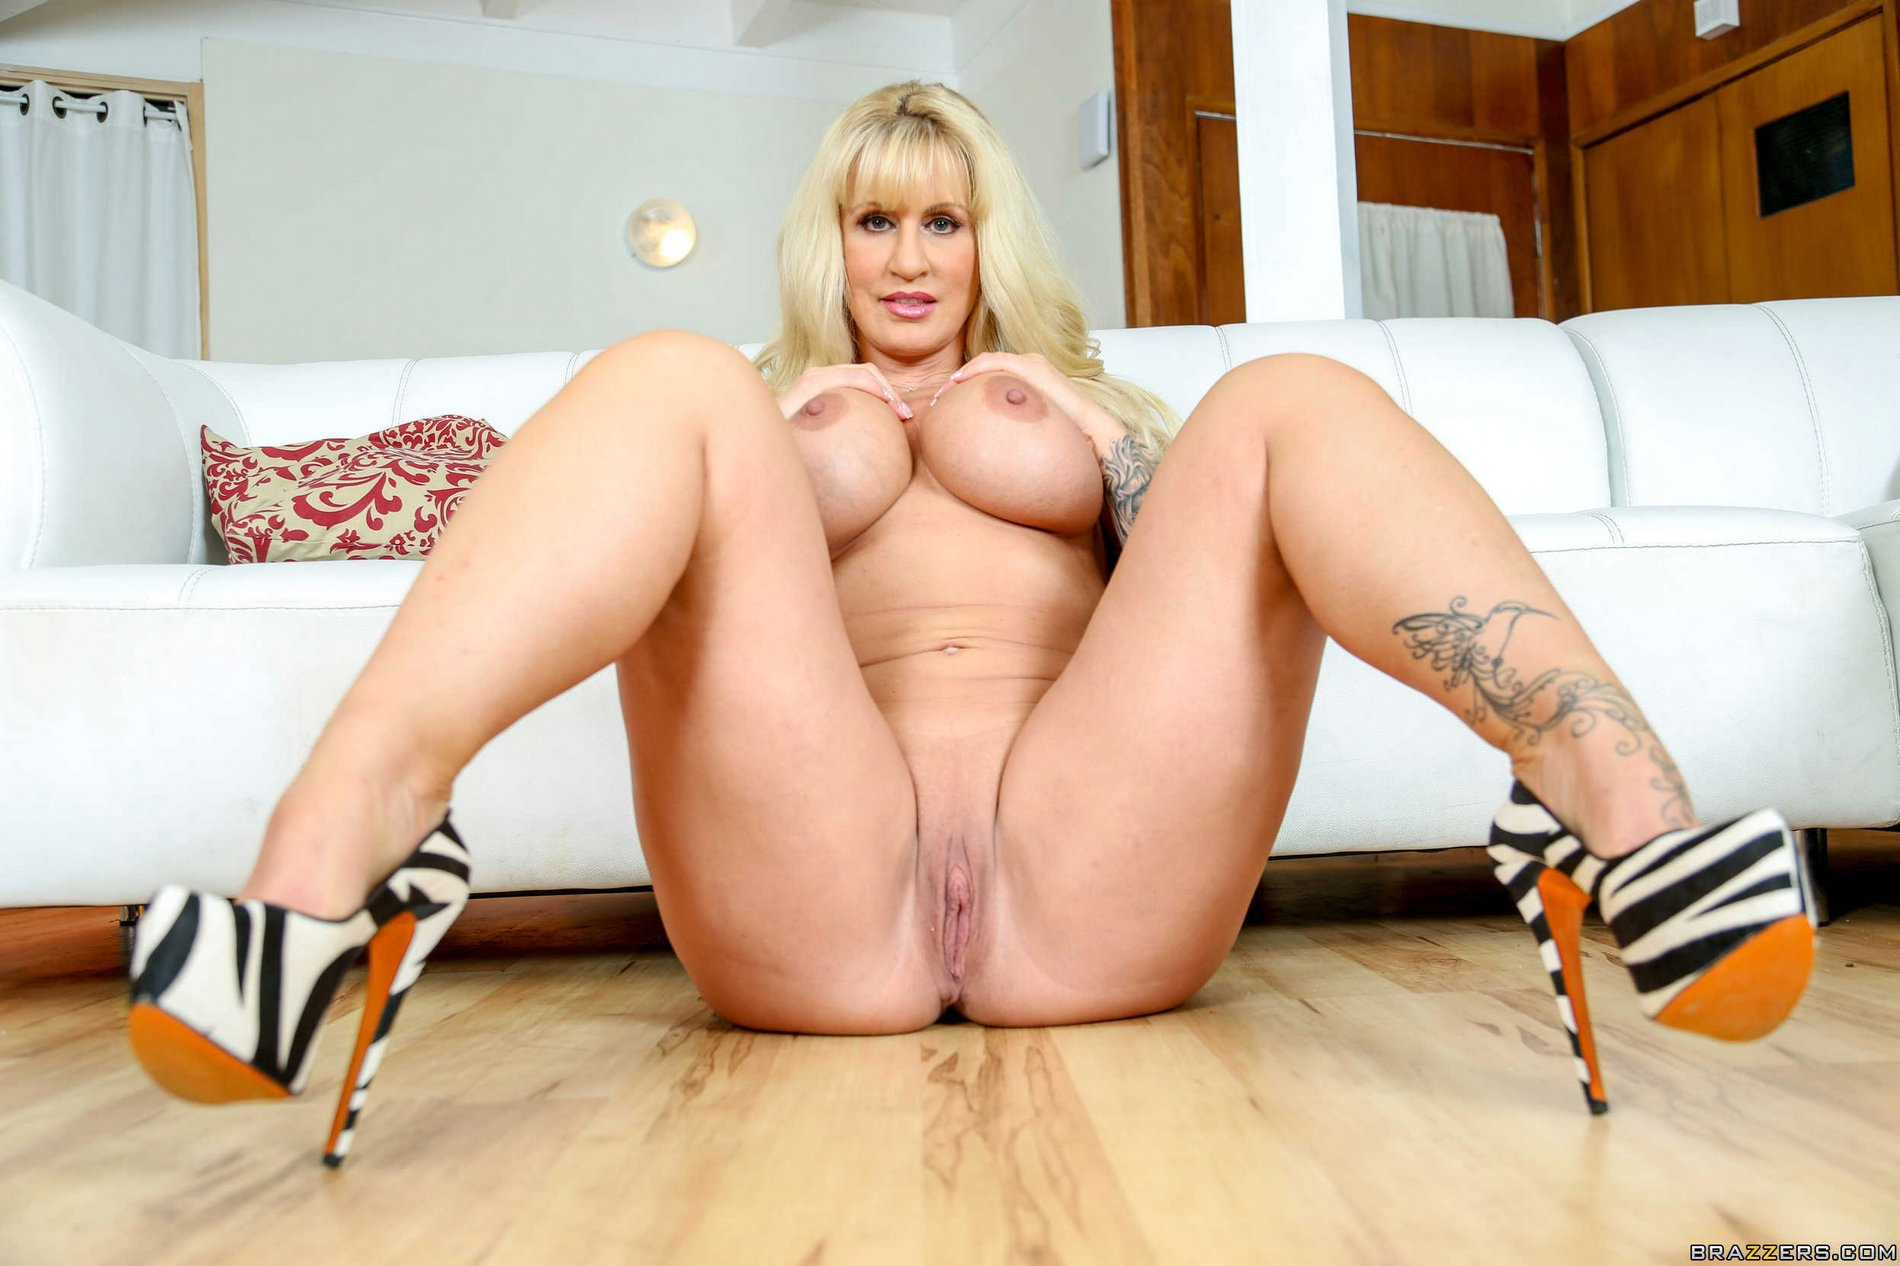 image Blonde milf ryan conner takes massive cock in her asshole Part 2